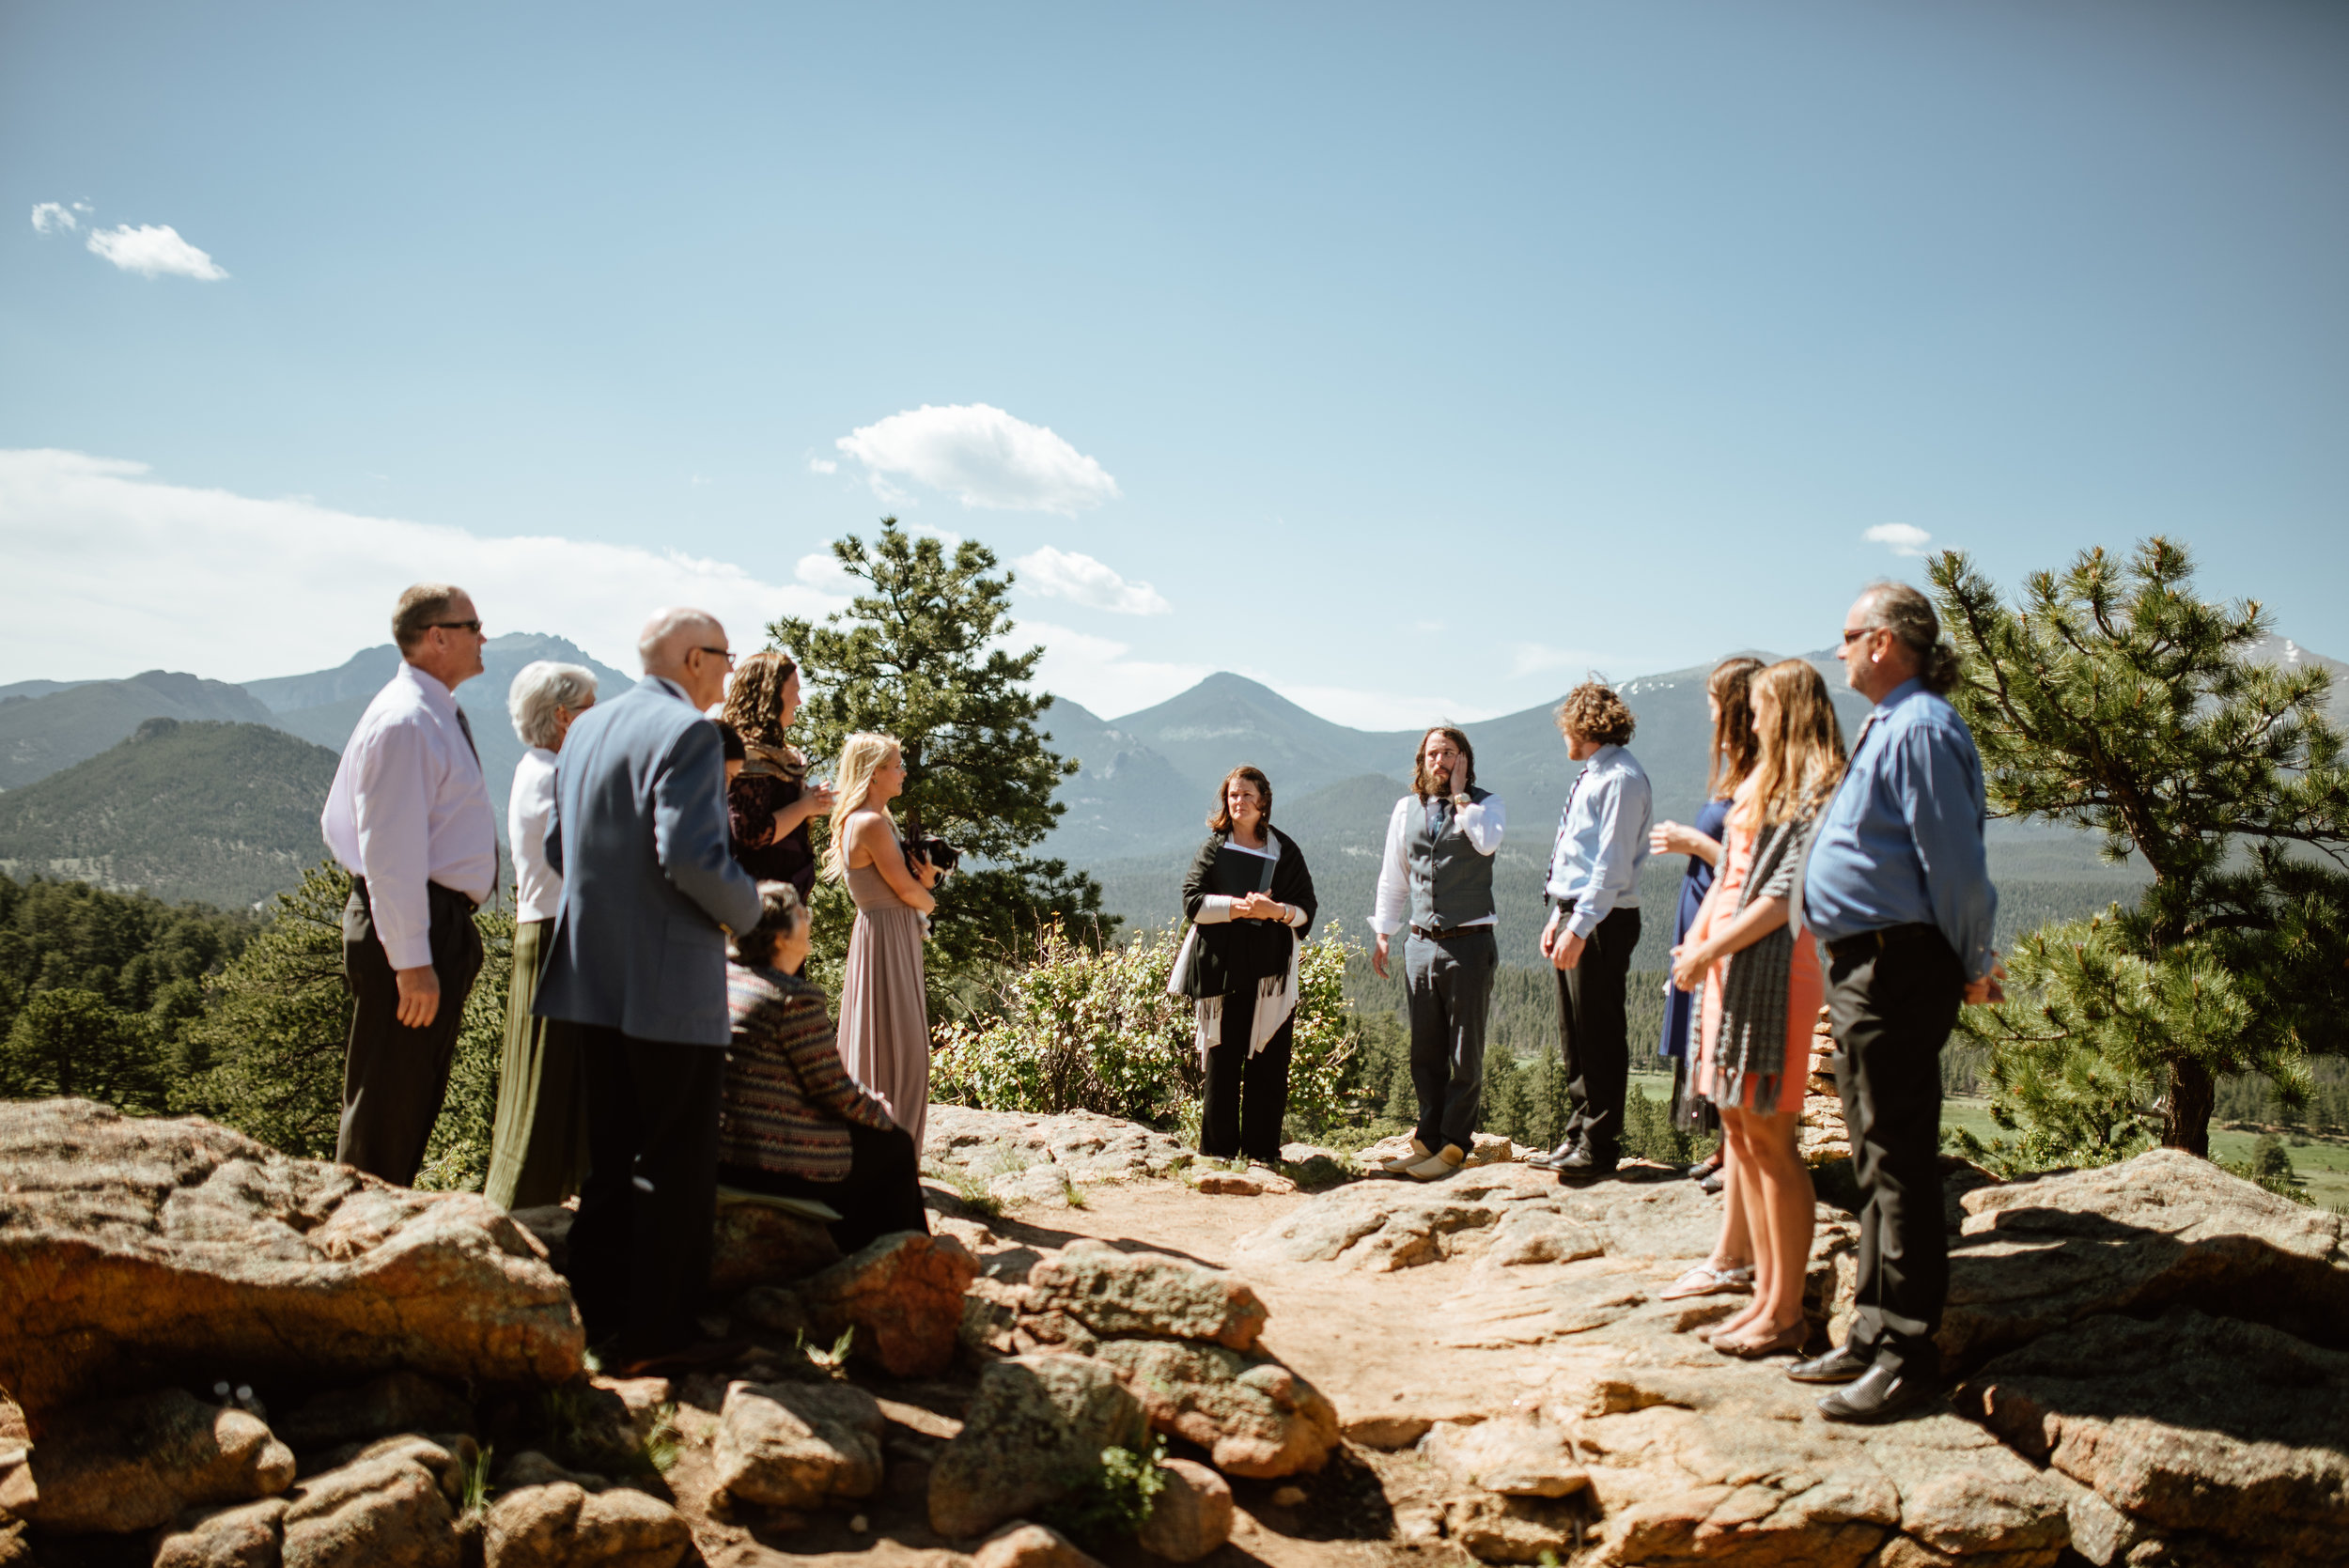 This intimate wedding ceremony at 3m curve in RMNP couldn't have been more private and beautiful! Love the idea of a small ceremony like this one! | 3m Curve elopement photos by Rocky Mountain National Park wedding photographer, Maddie Mae.